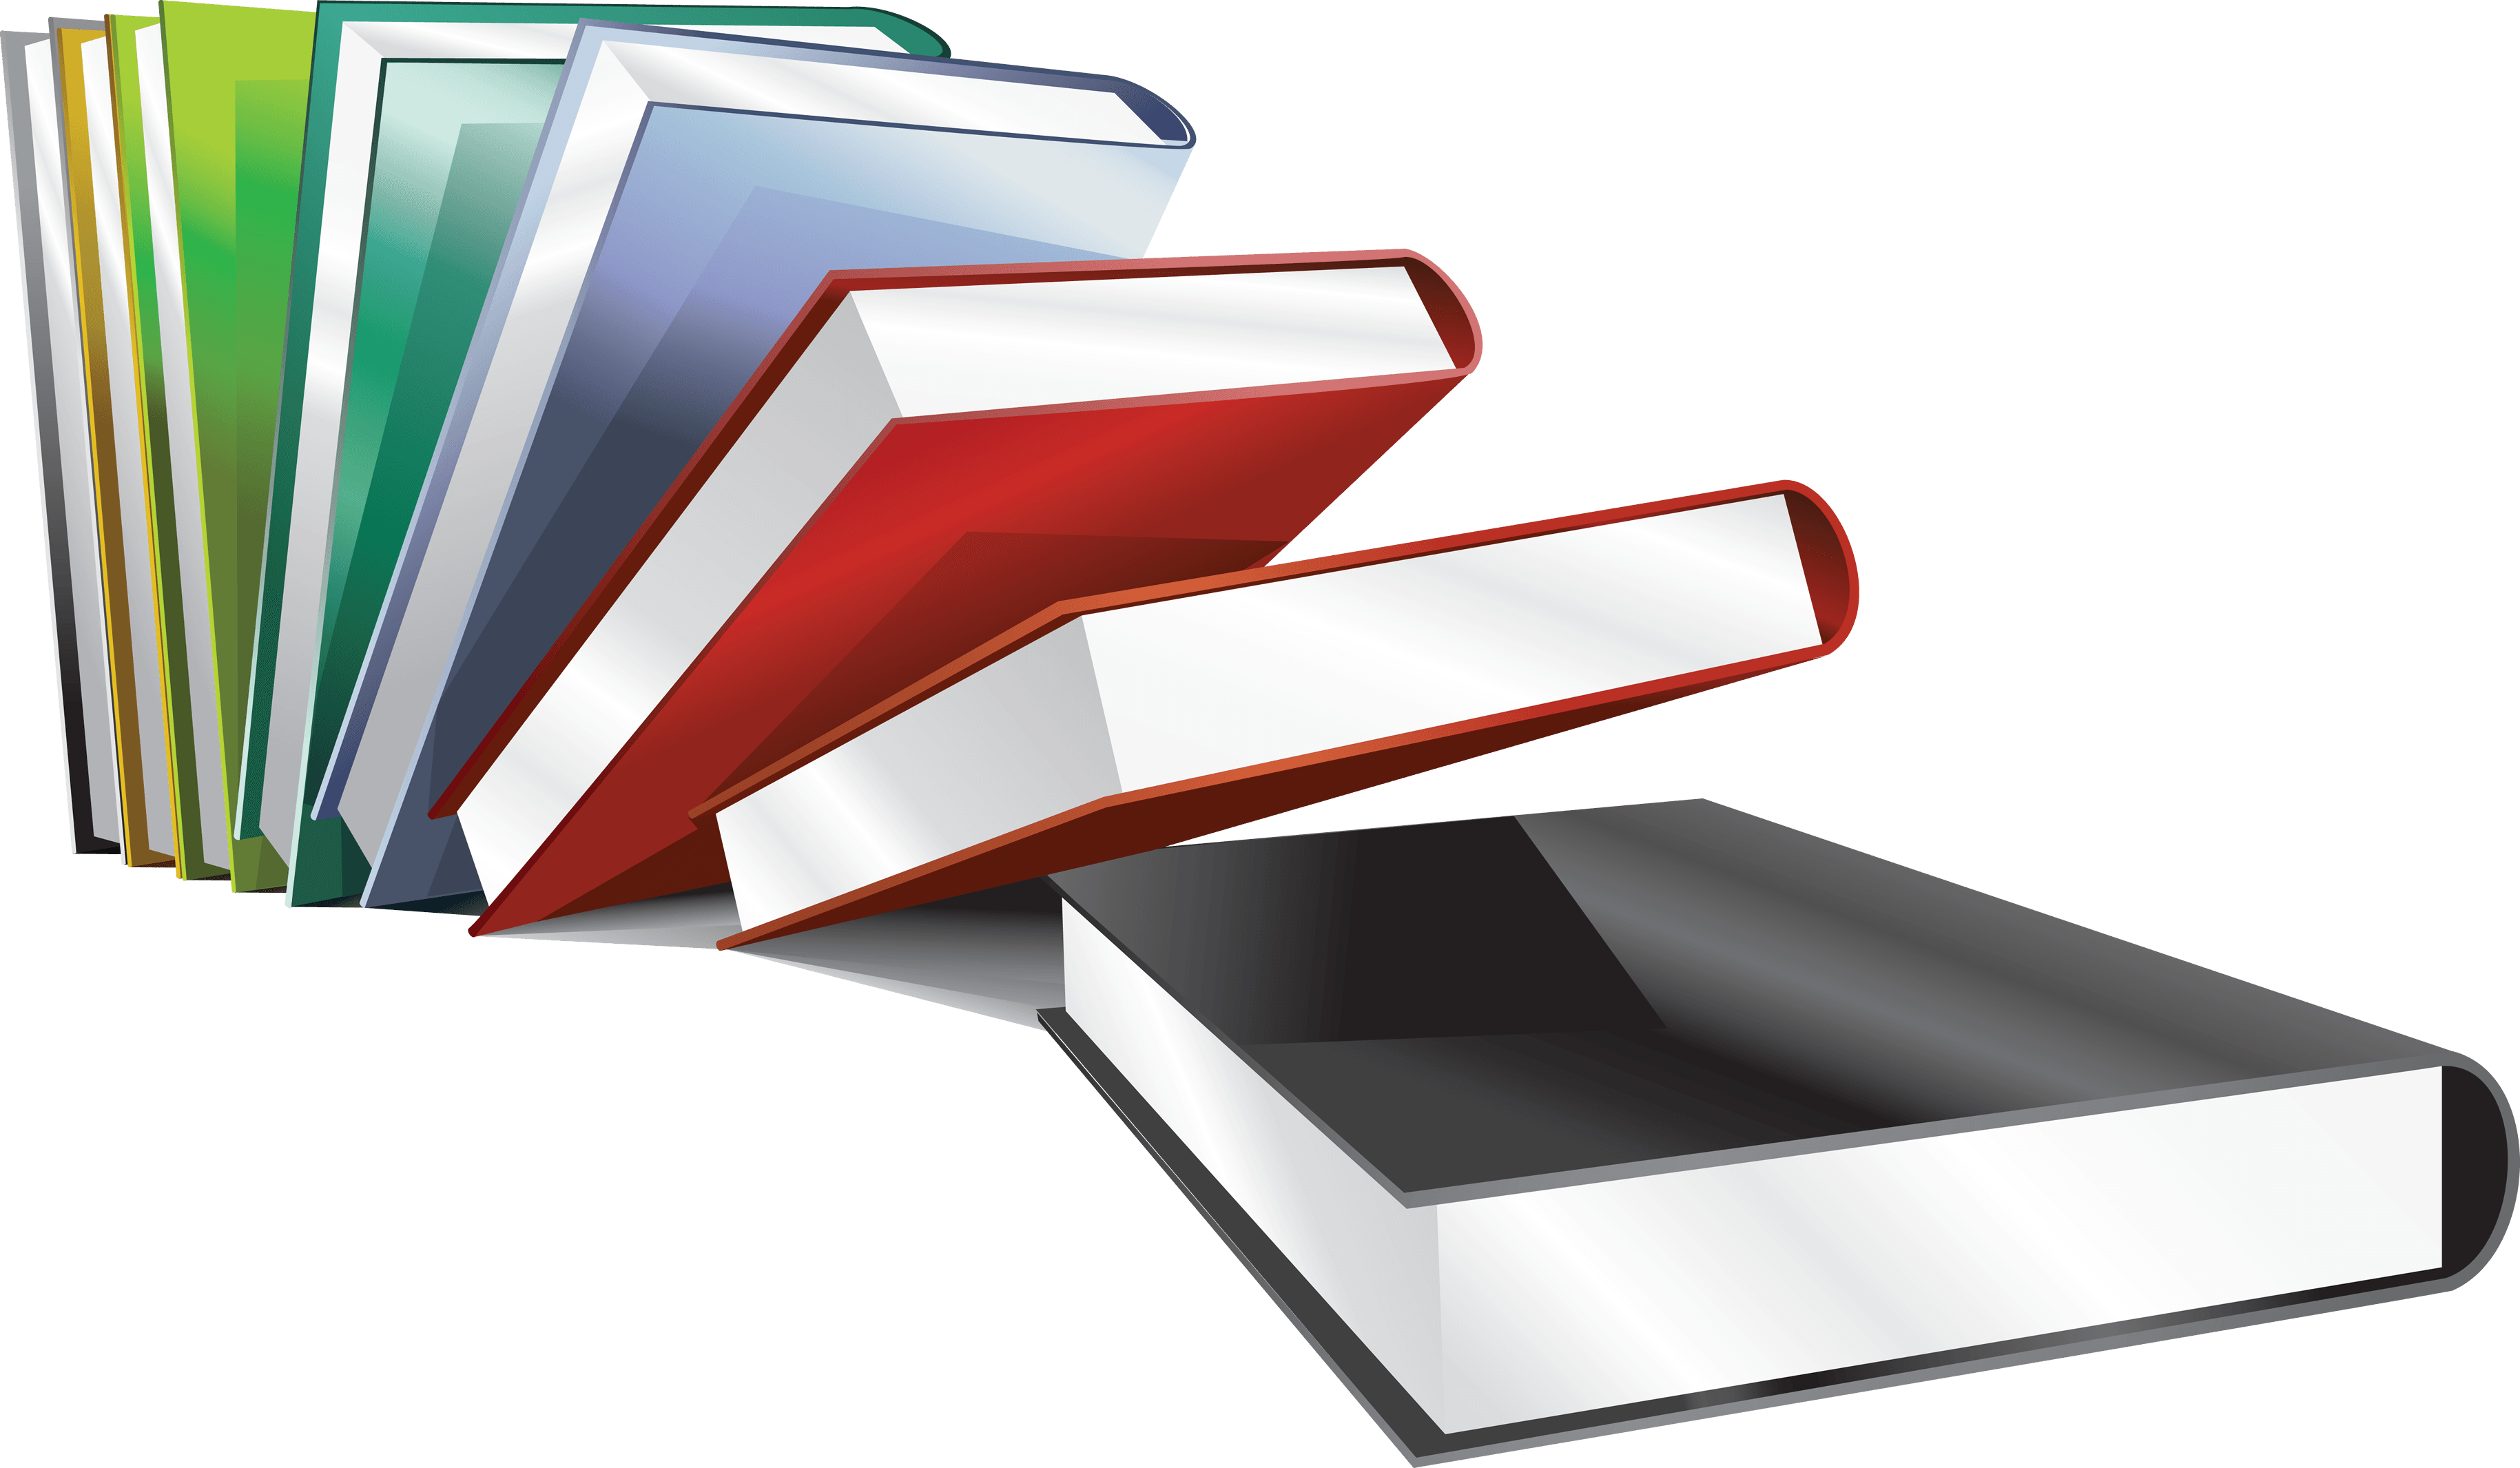 Books clipart transparent background.  png image with